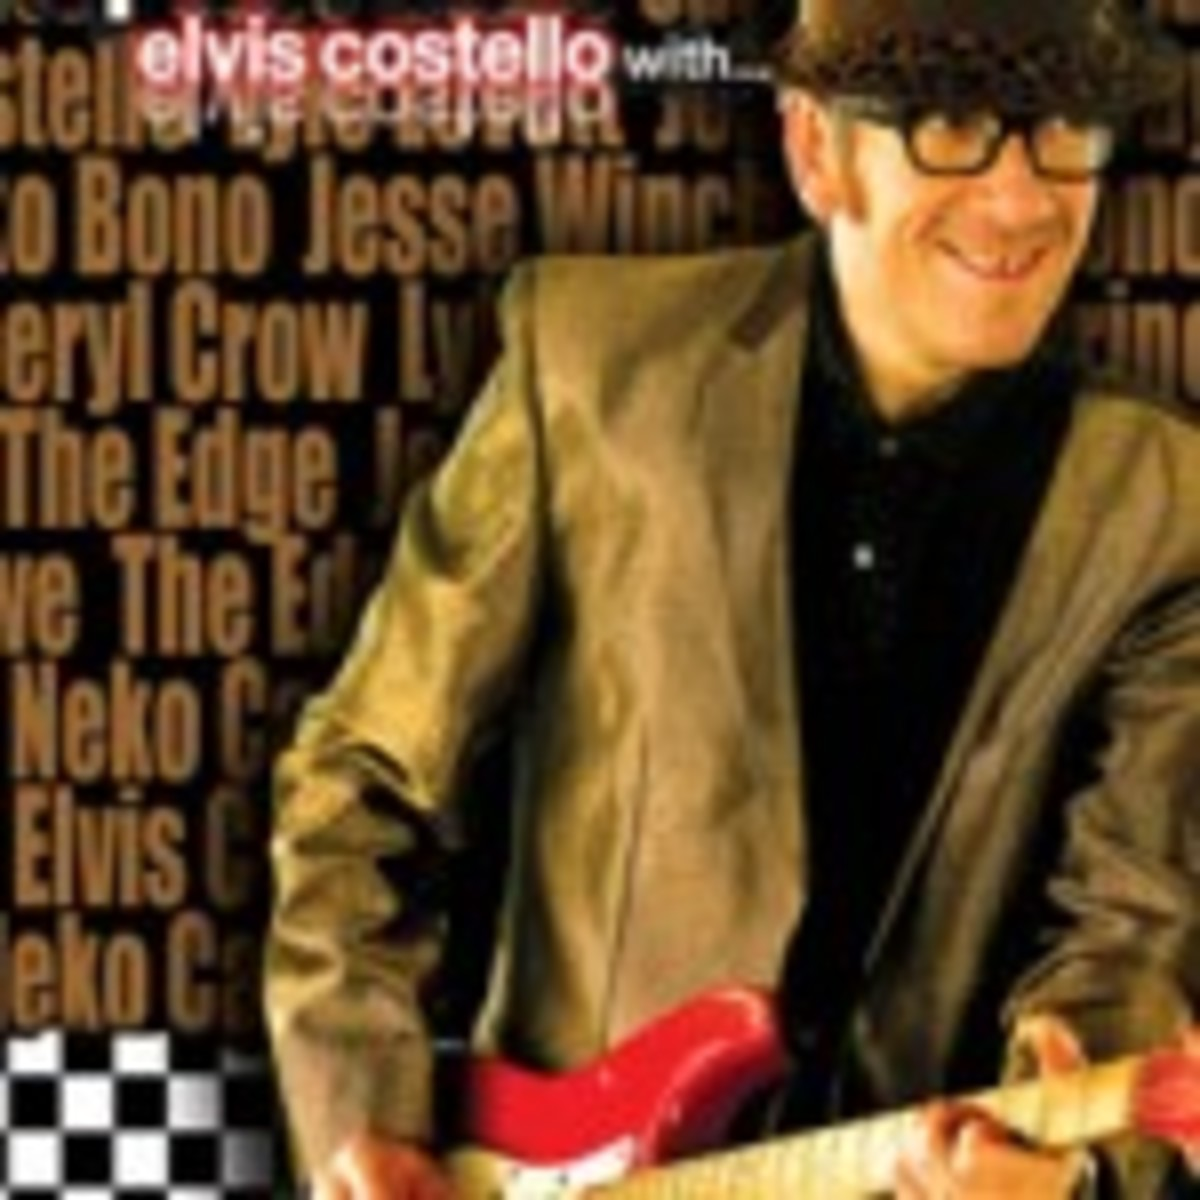 Spectacle with Elvis Costello_season 2